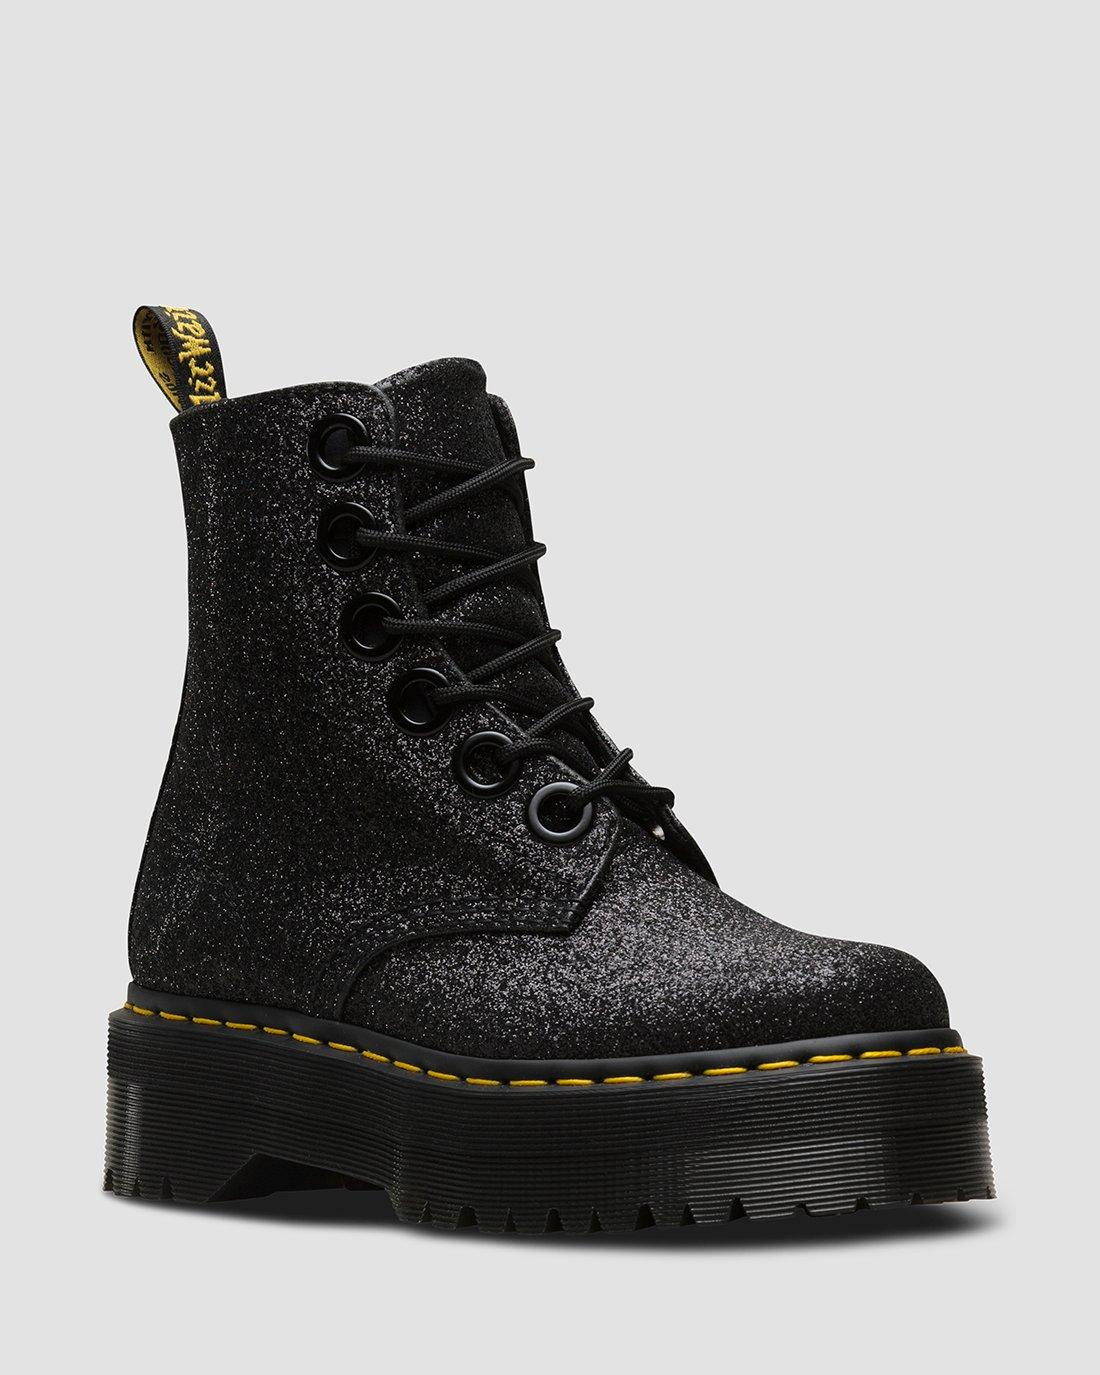 Promos | The Official FR Dr Martens Store